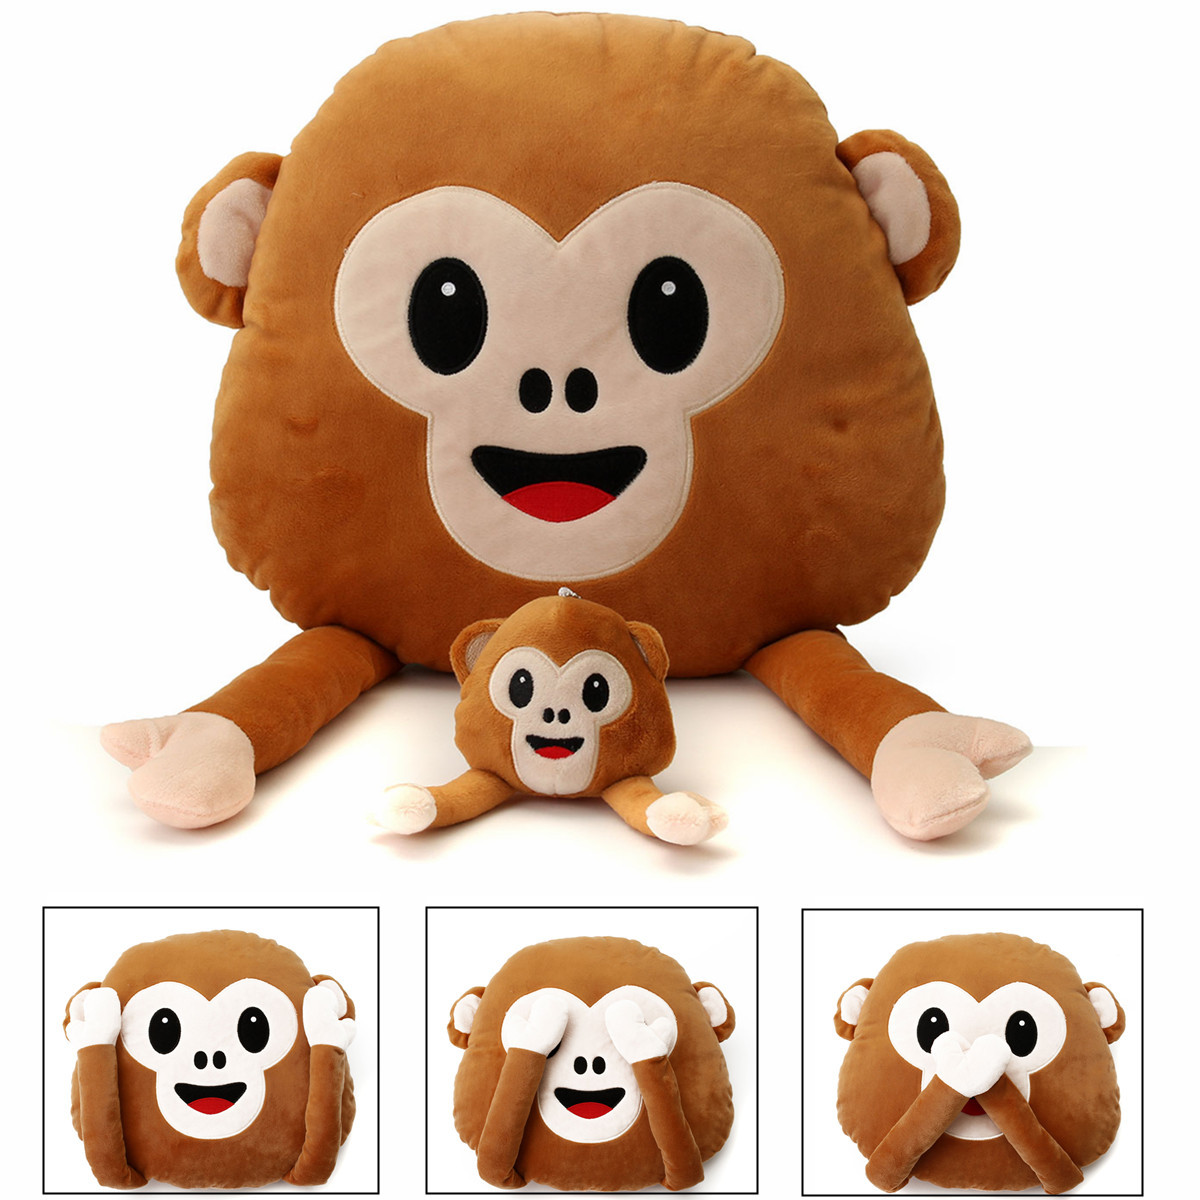 Monkey Emoji Emoticon Throw Plush Stuffed Toy Doll Decor Gift